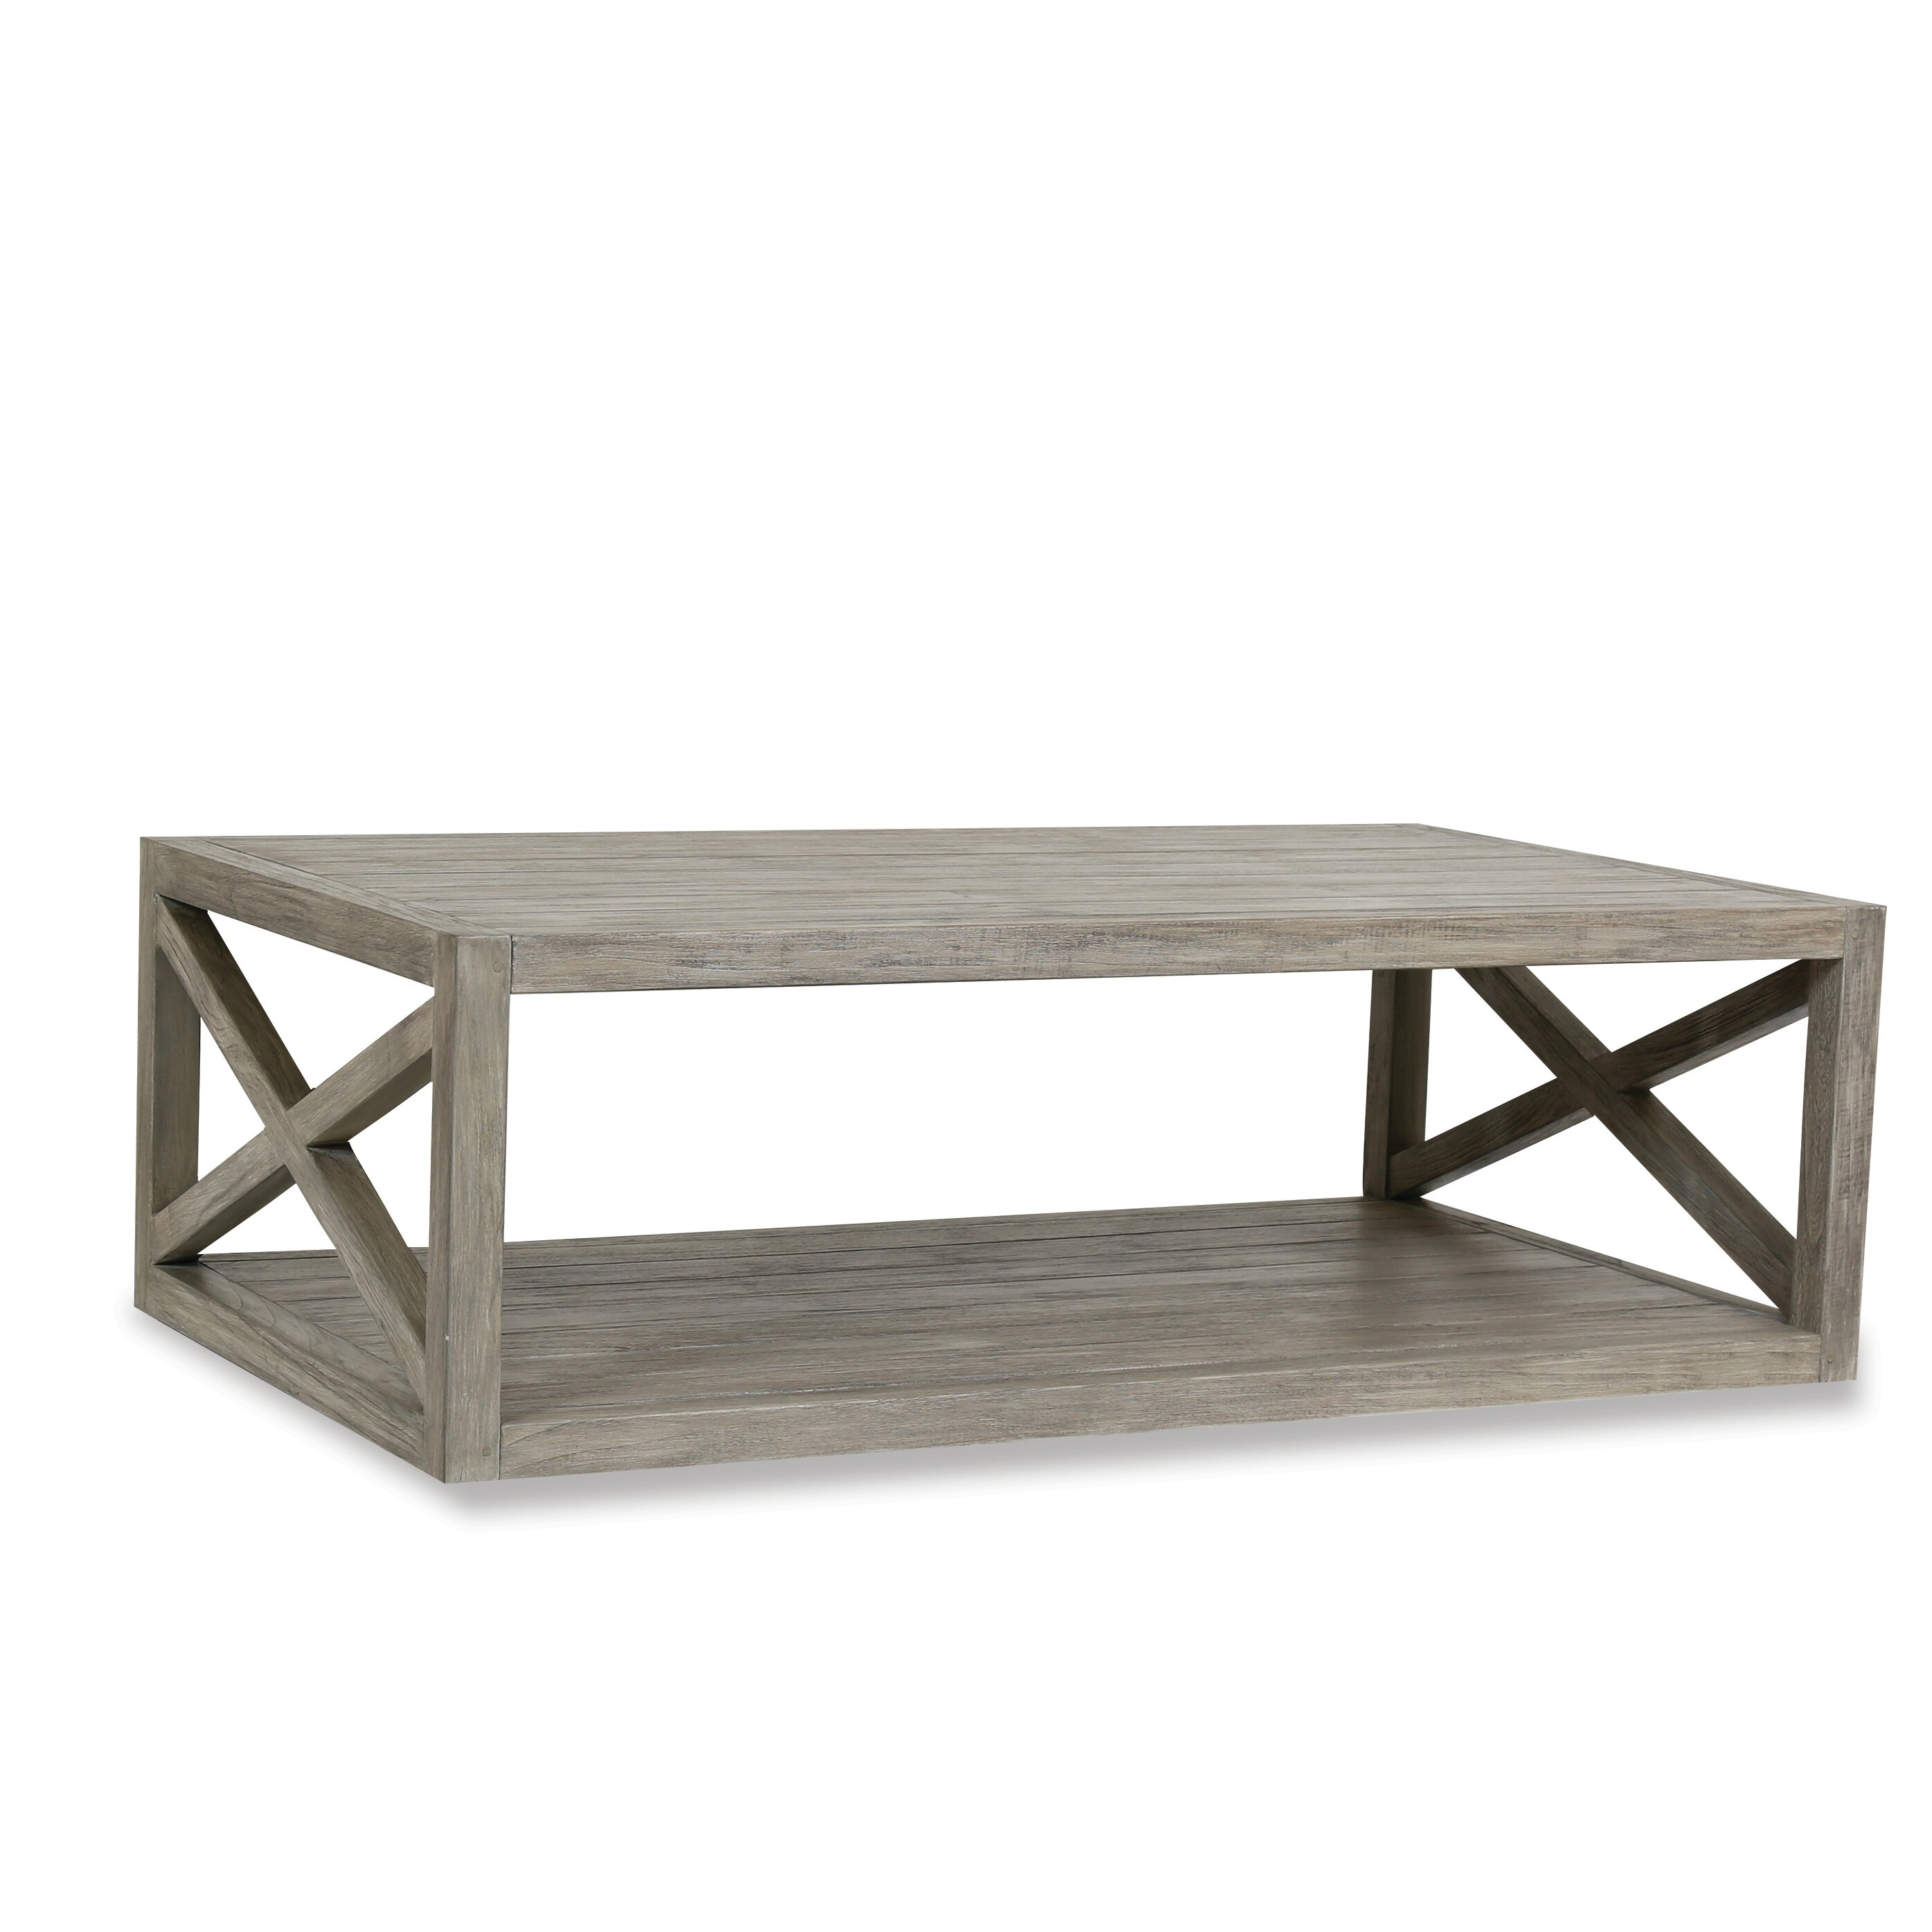 Solid Wood Coffee Table Wayfair: Sunset West Modena Solid Wood Coffee Table